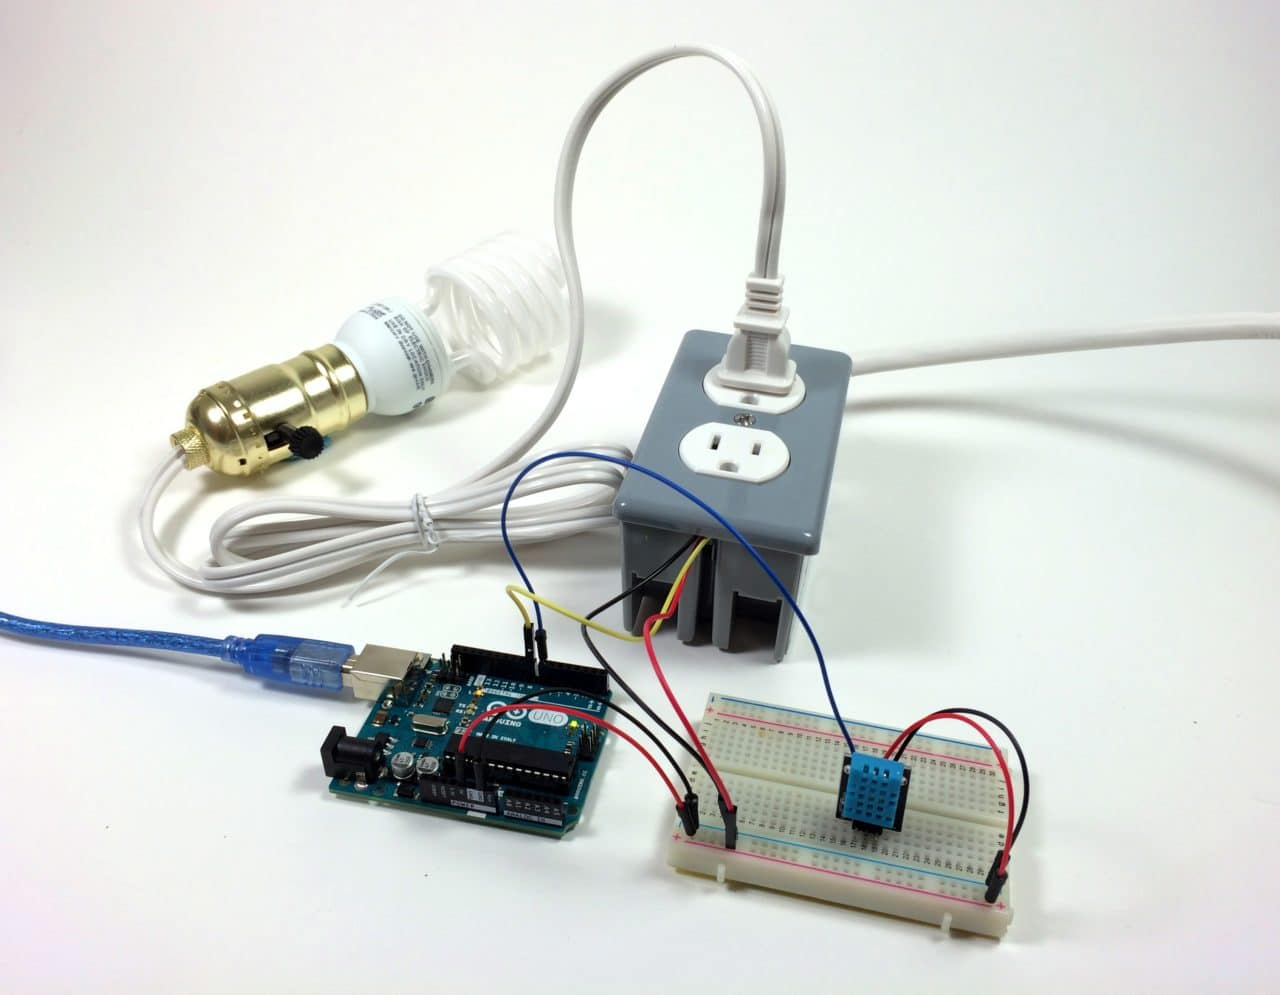 hight resolution of turn any appliance into a smart device with an arduino controlled power outlet